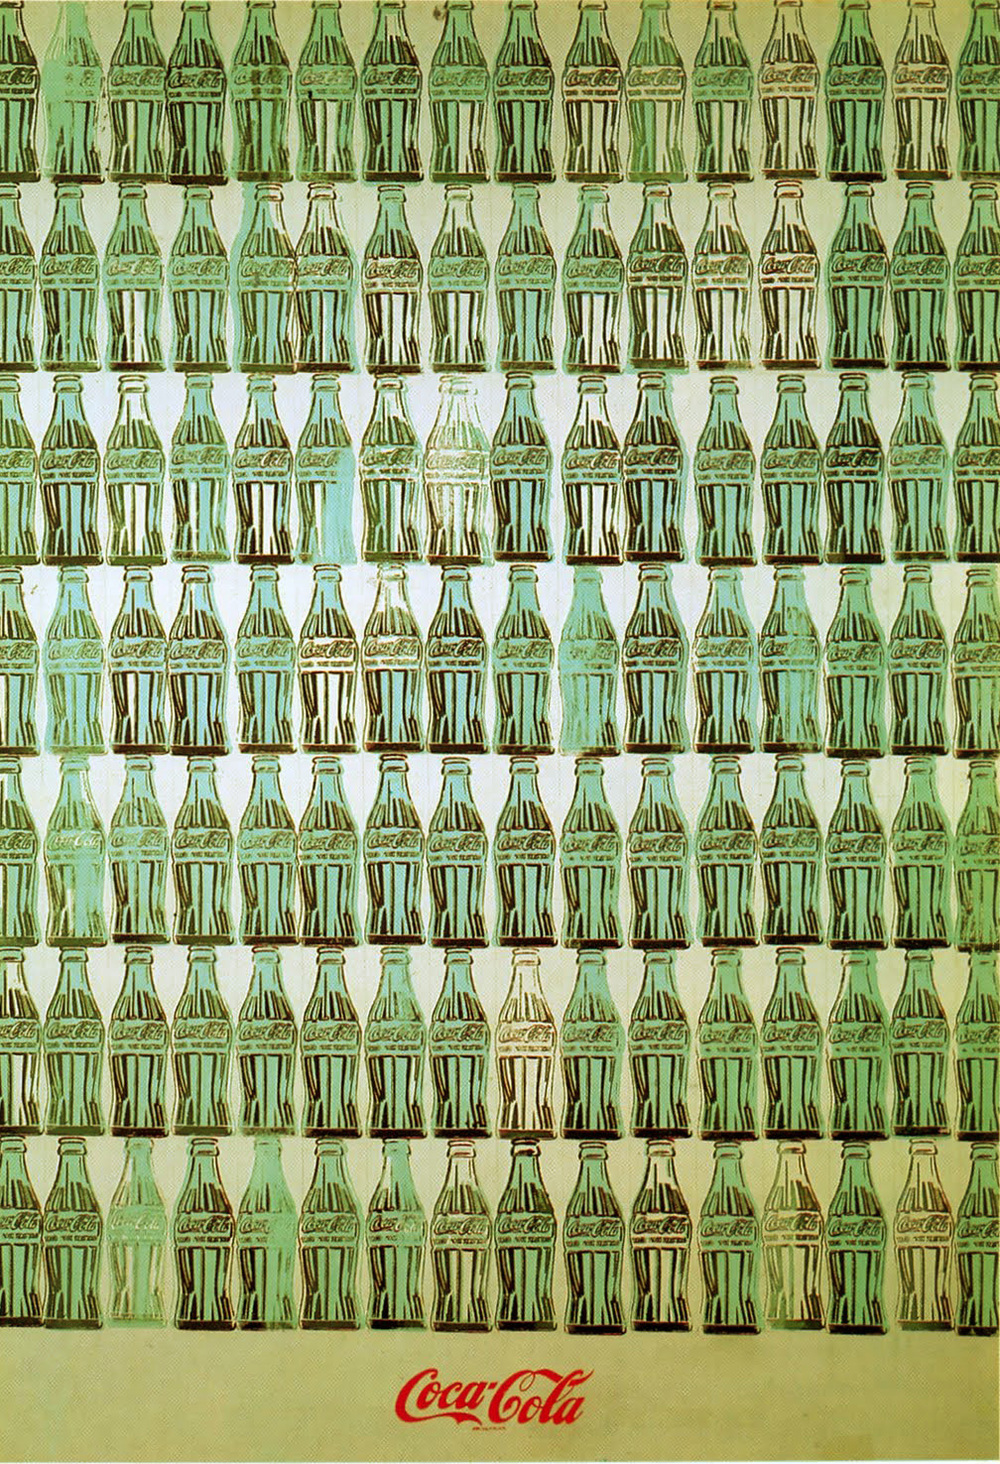 andy-warhol-green-coca-cola-bottles-1963.jpg